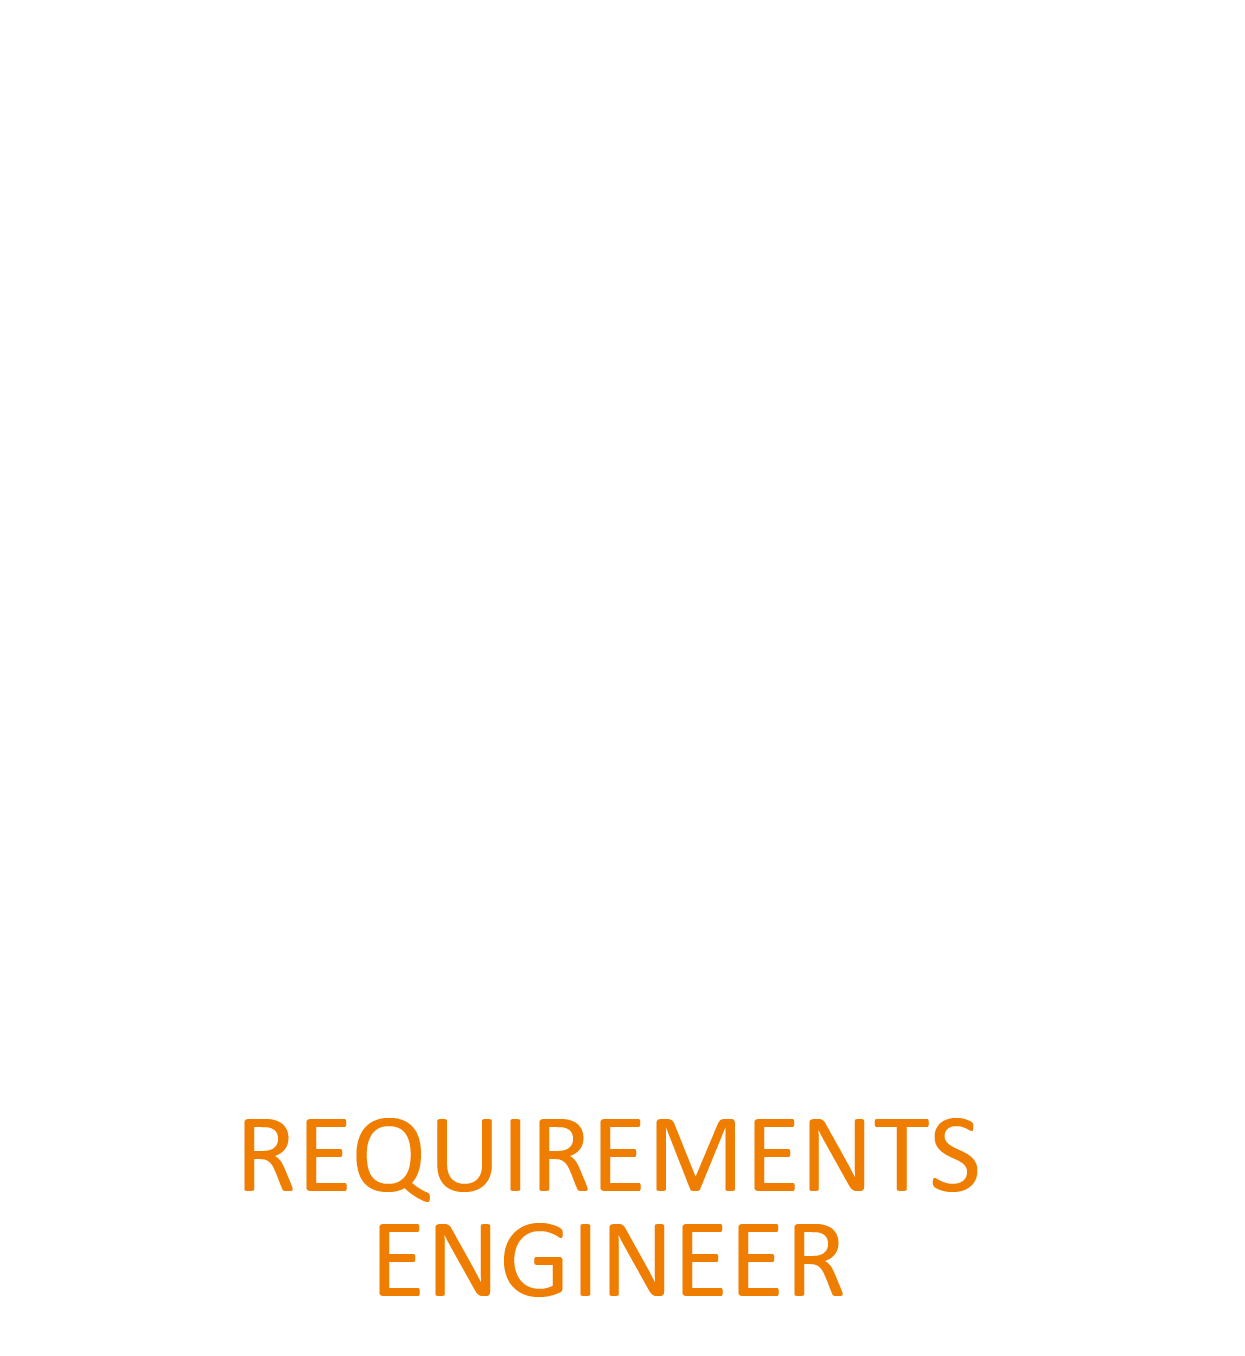 Requirements Engineer